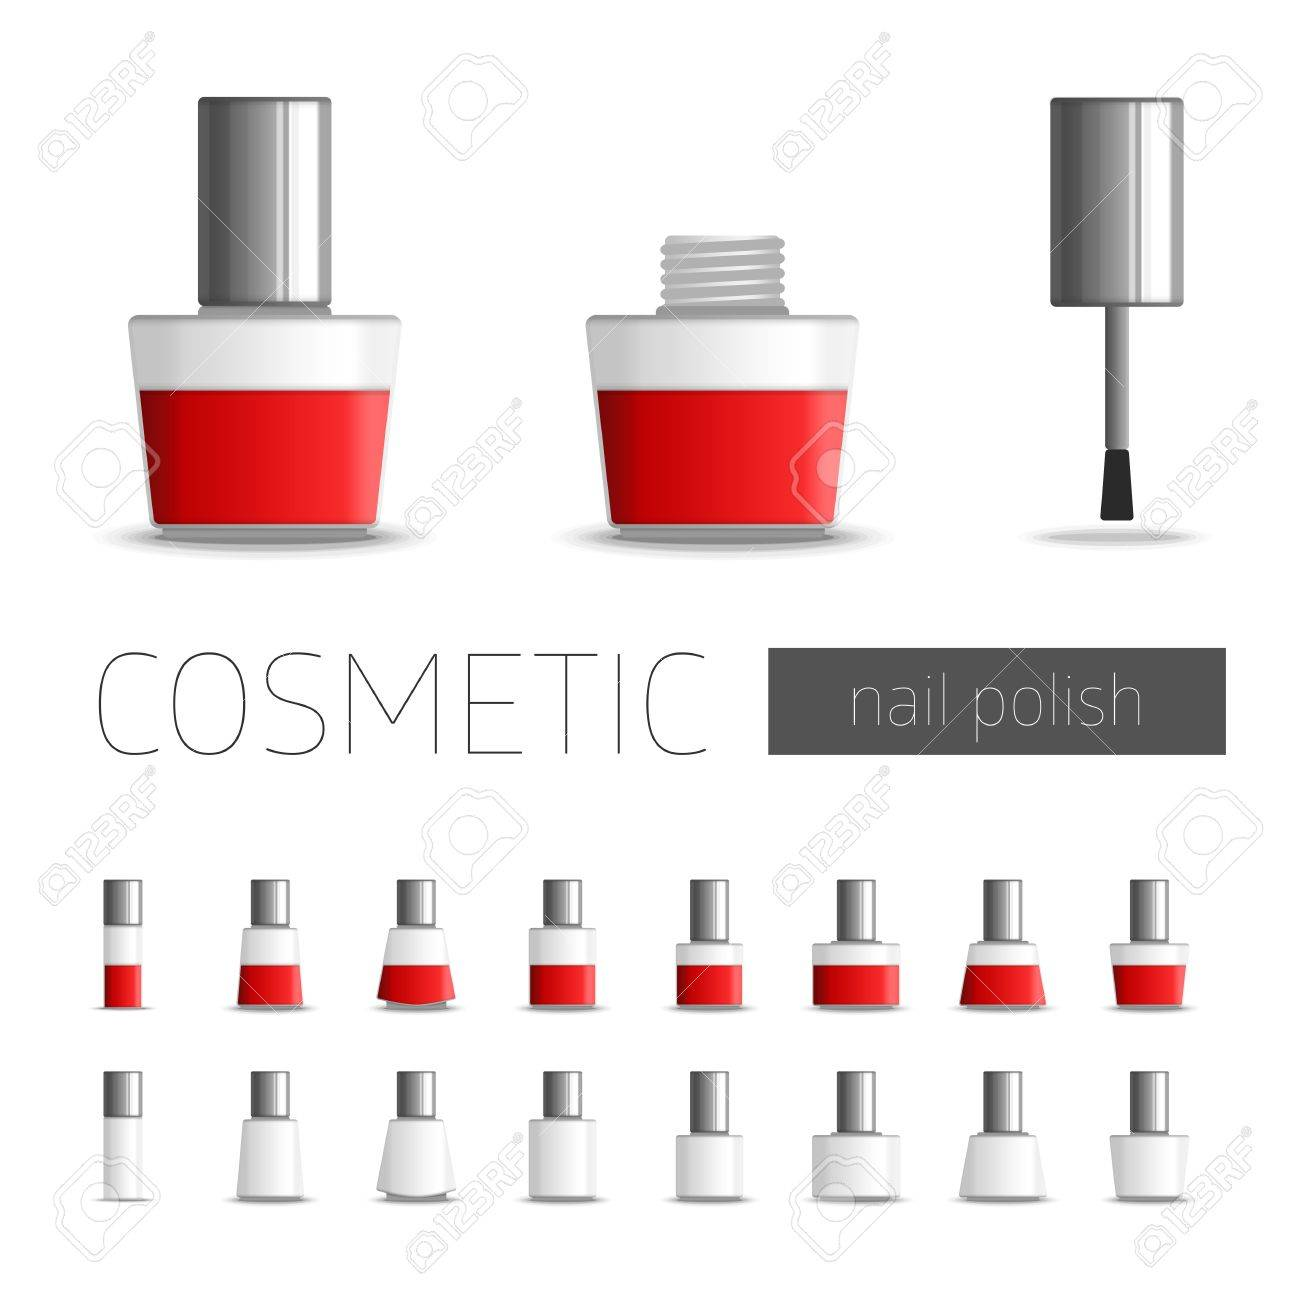 Realistic Illustration Of Nail Polish. Vector Template Package ...